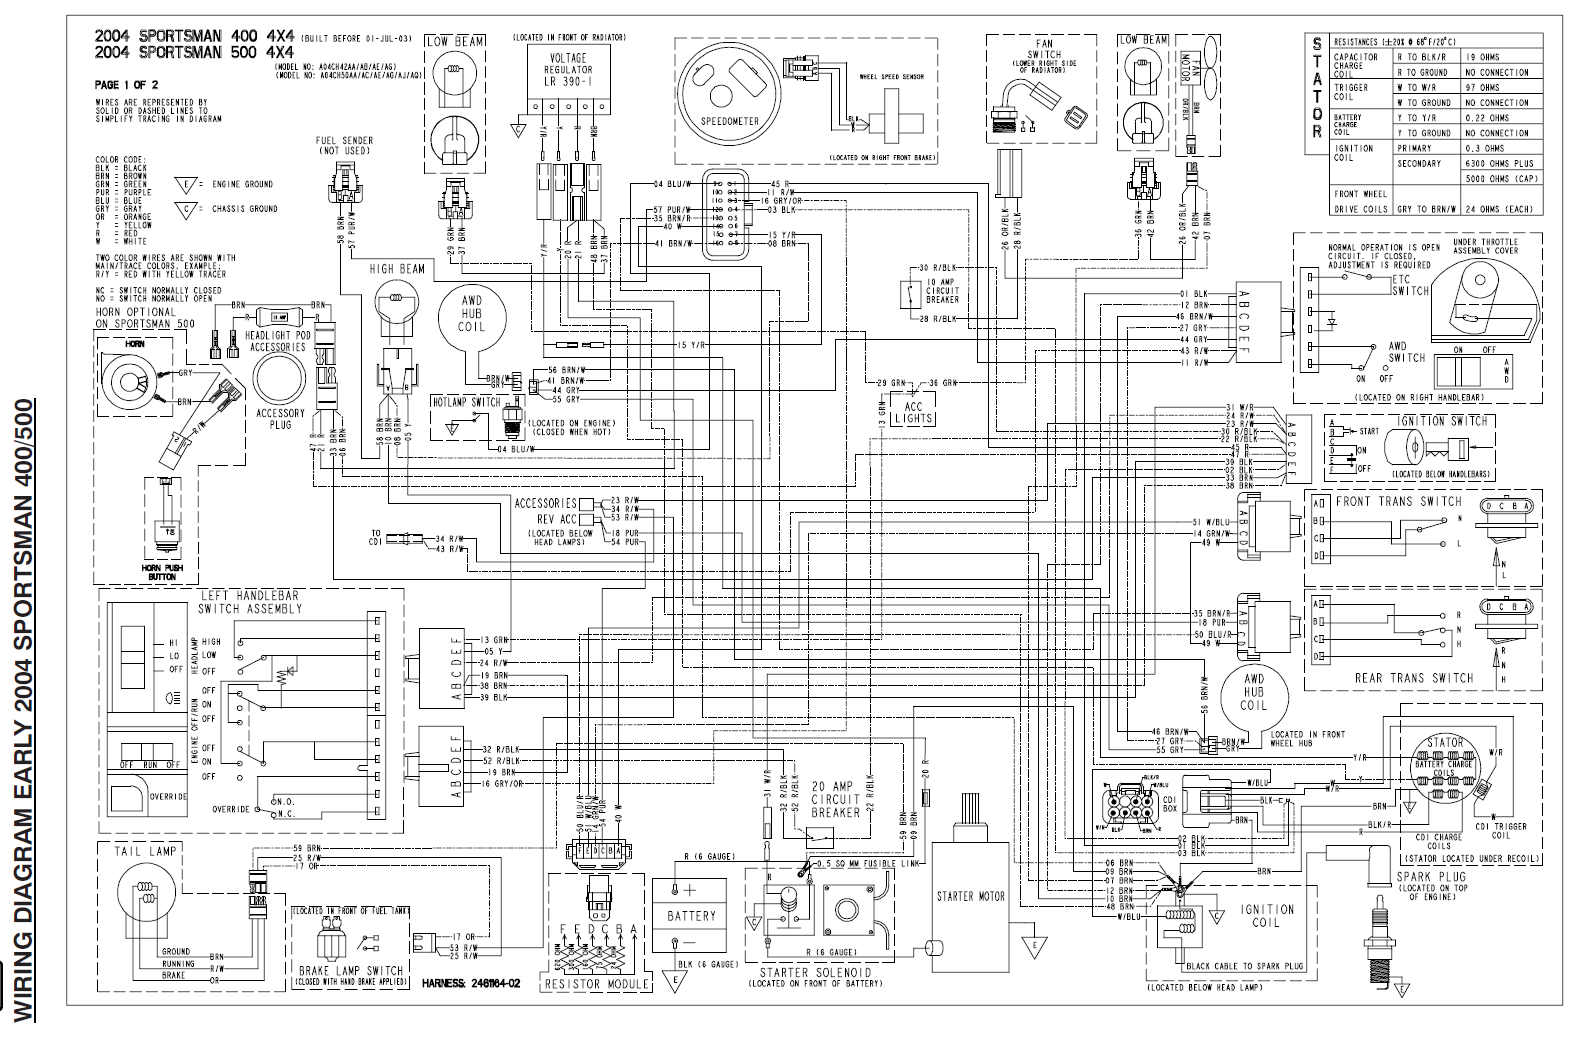 Sportsman 500 wiring diagram | Polaris ATV ForumPolaris ATV Forum